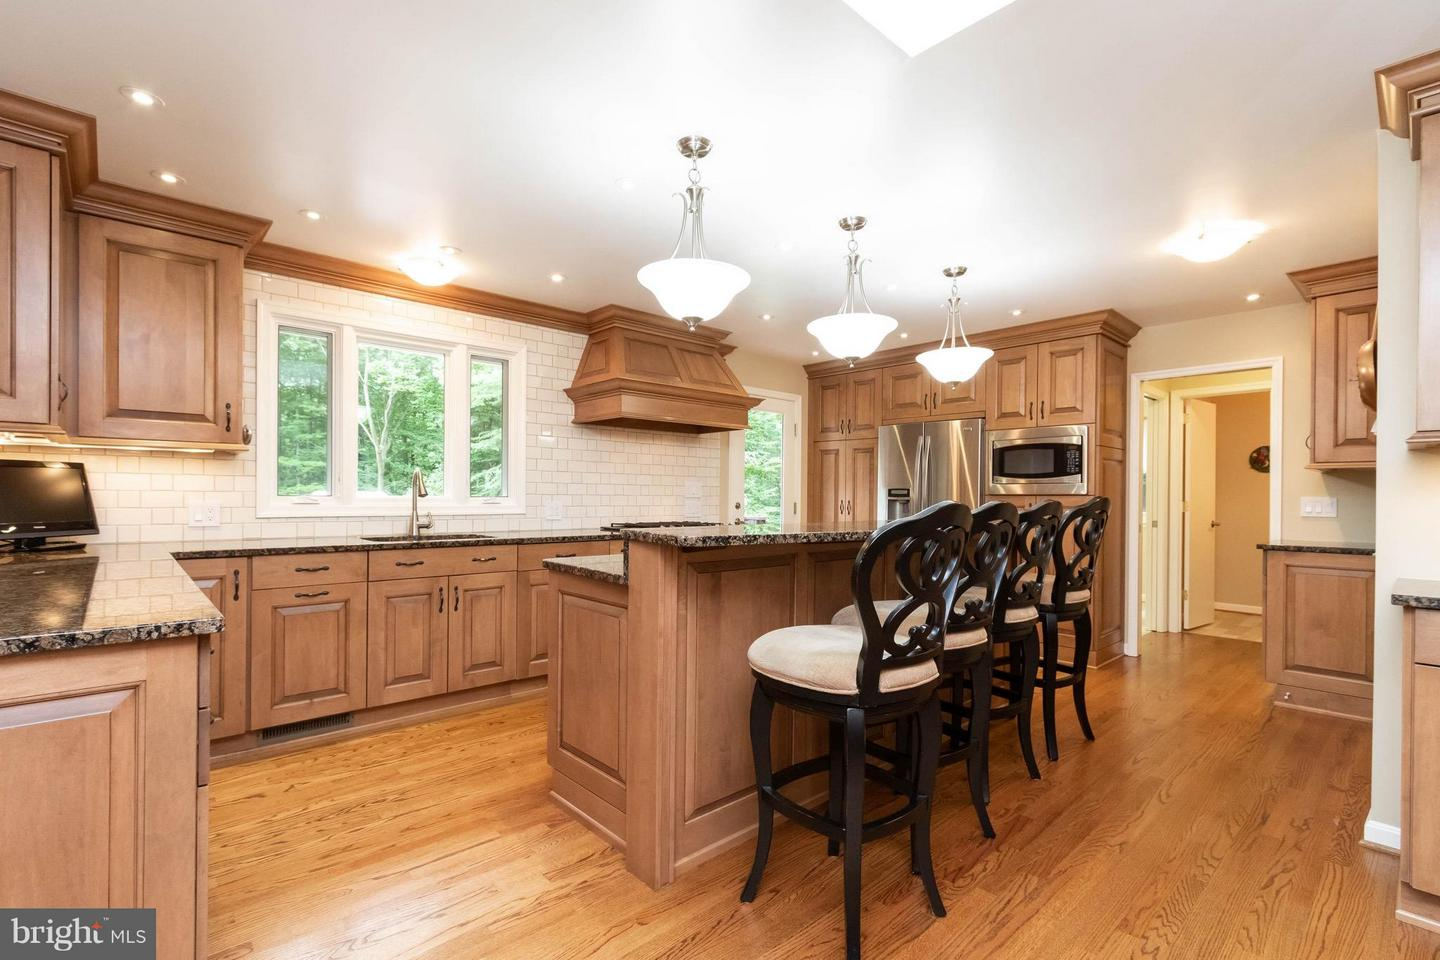 Other Residential for Sale at GLENVERDANT ESTATES, 7510 Willowbrook Road Fairfax Station, Virginia 22039 United States